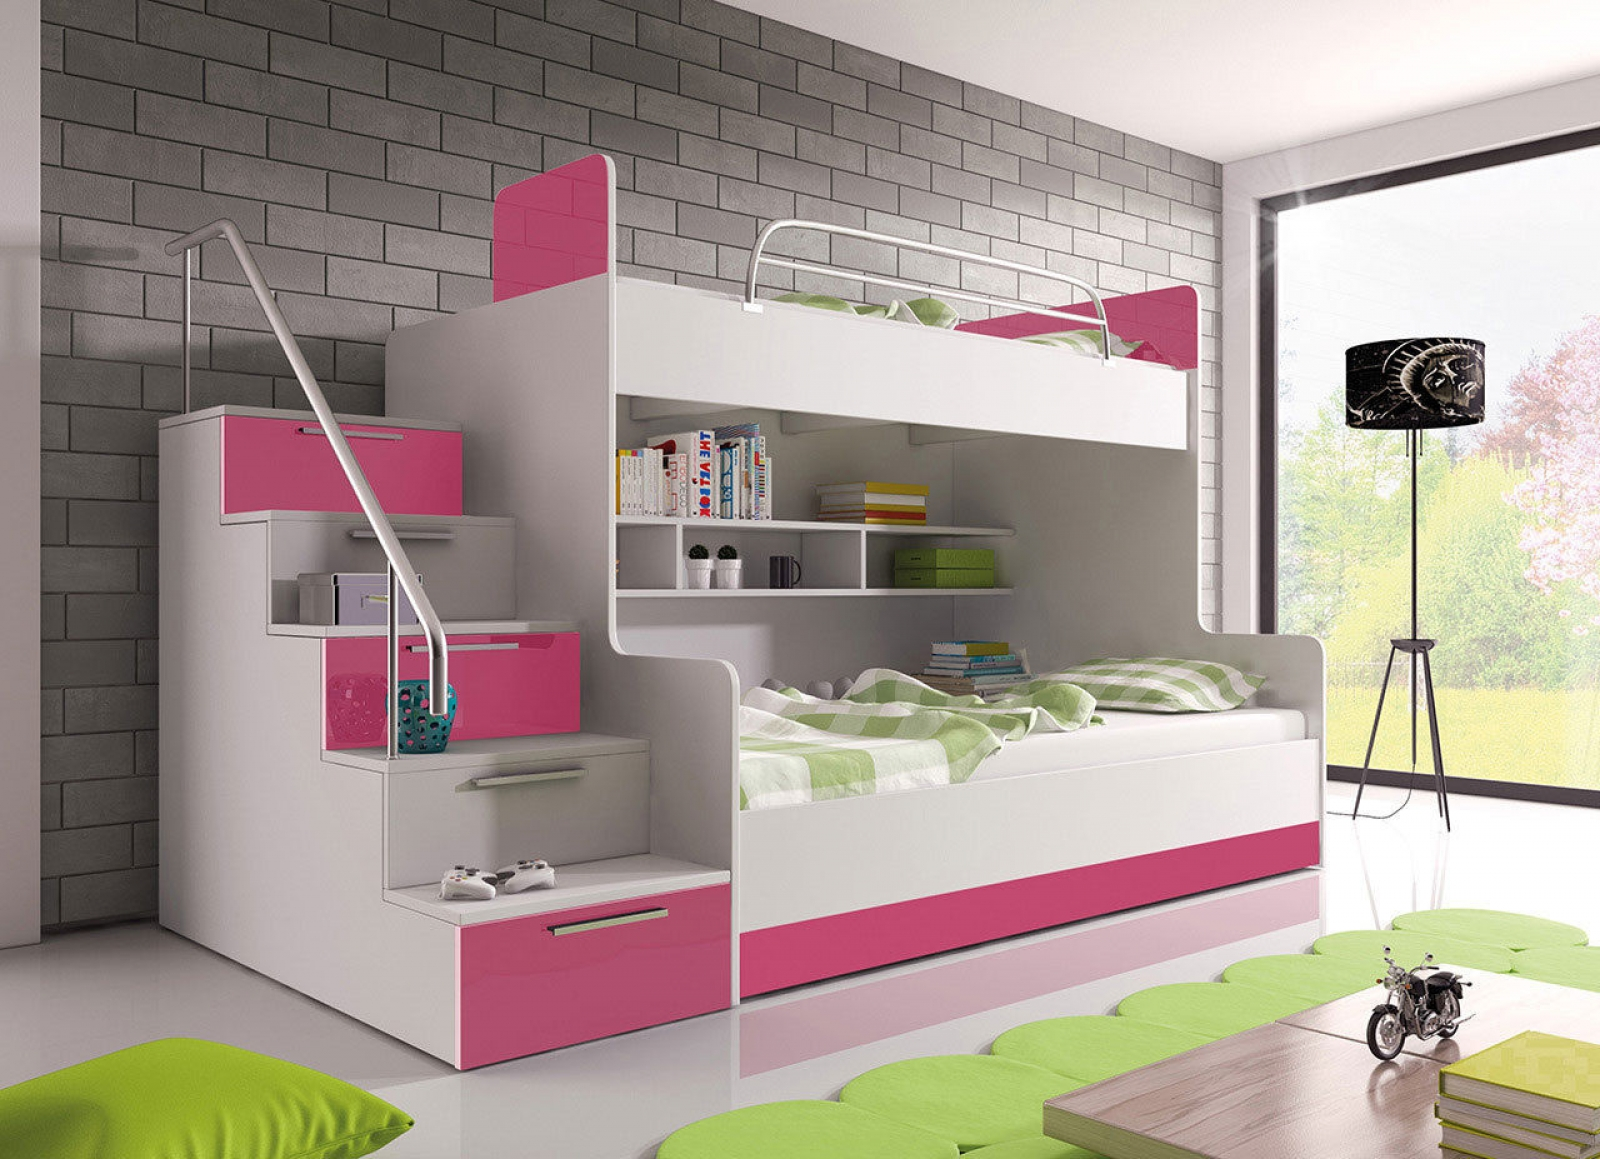 kaufexpert doppelstockbett rosa hochglanz links. Black Bedroom Furniture Sets. Home Design Ideas